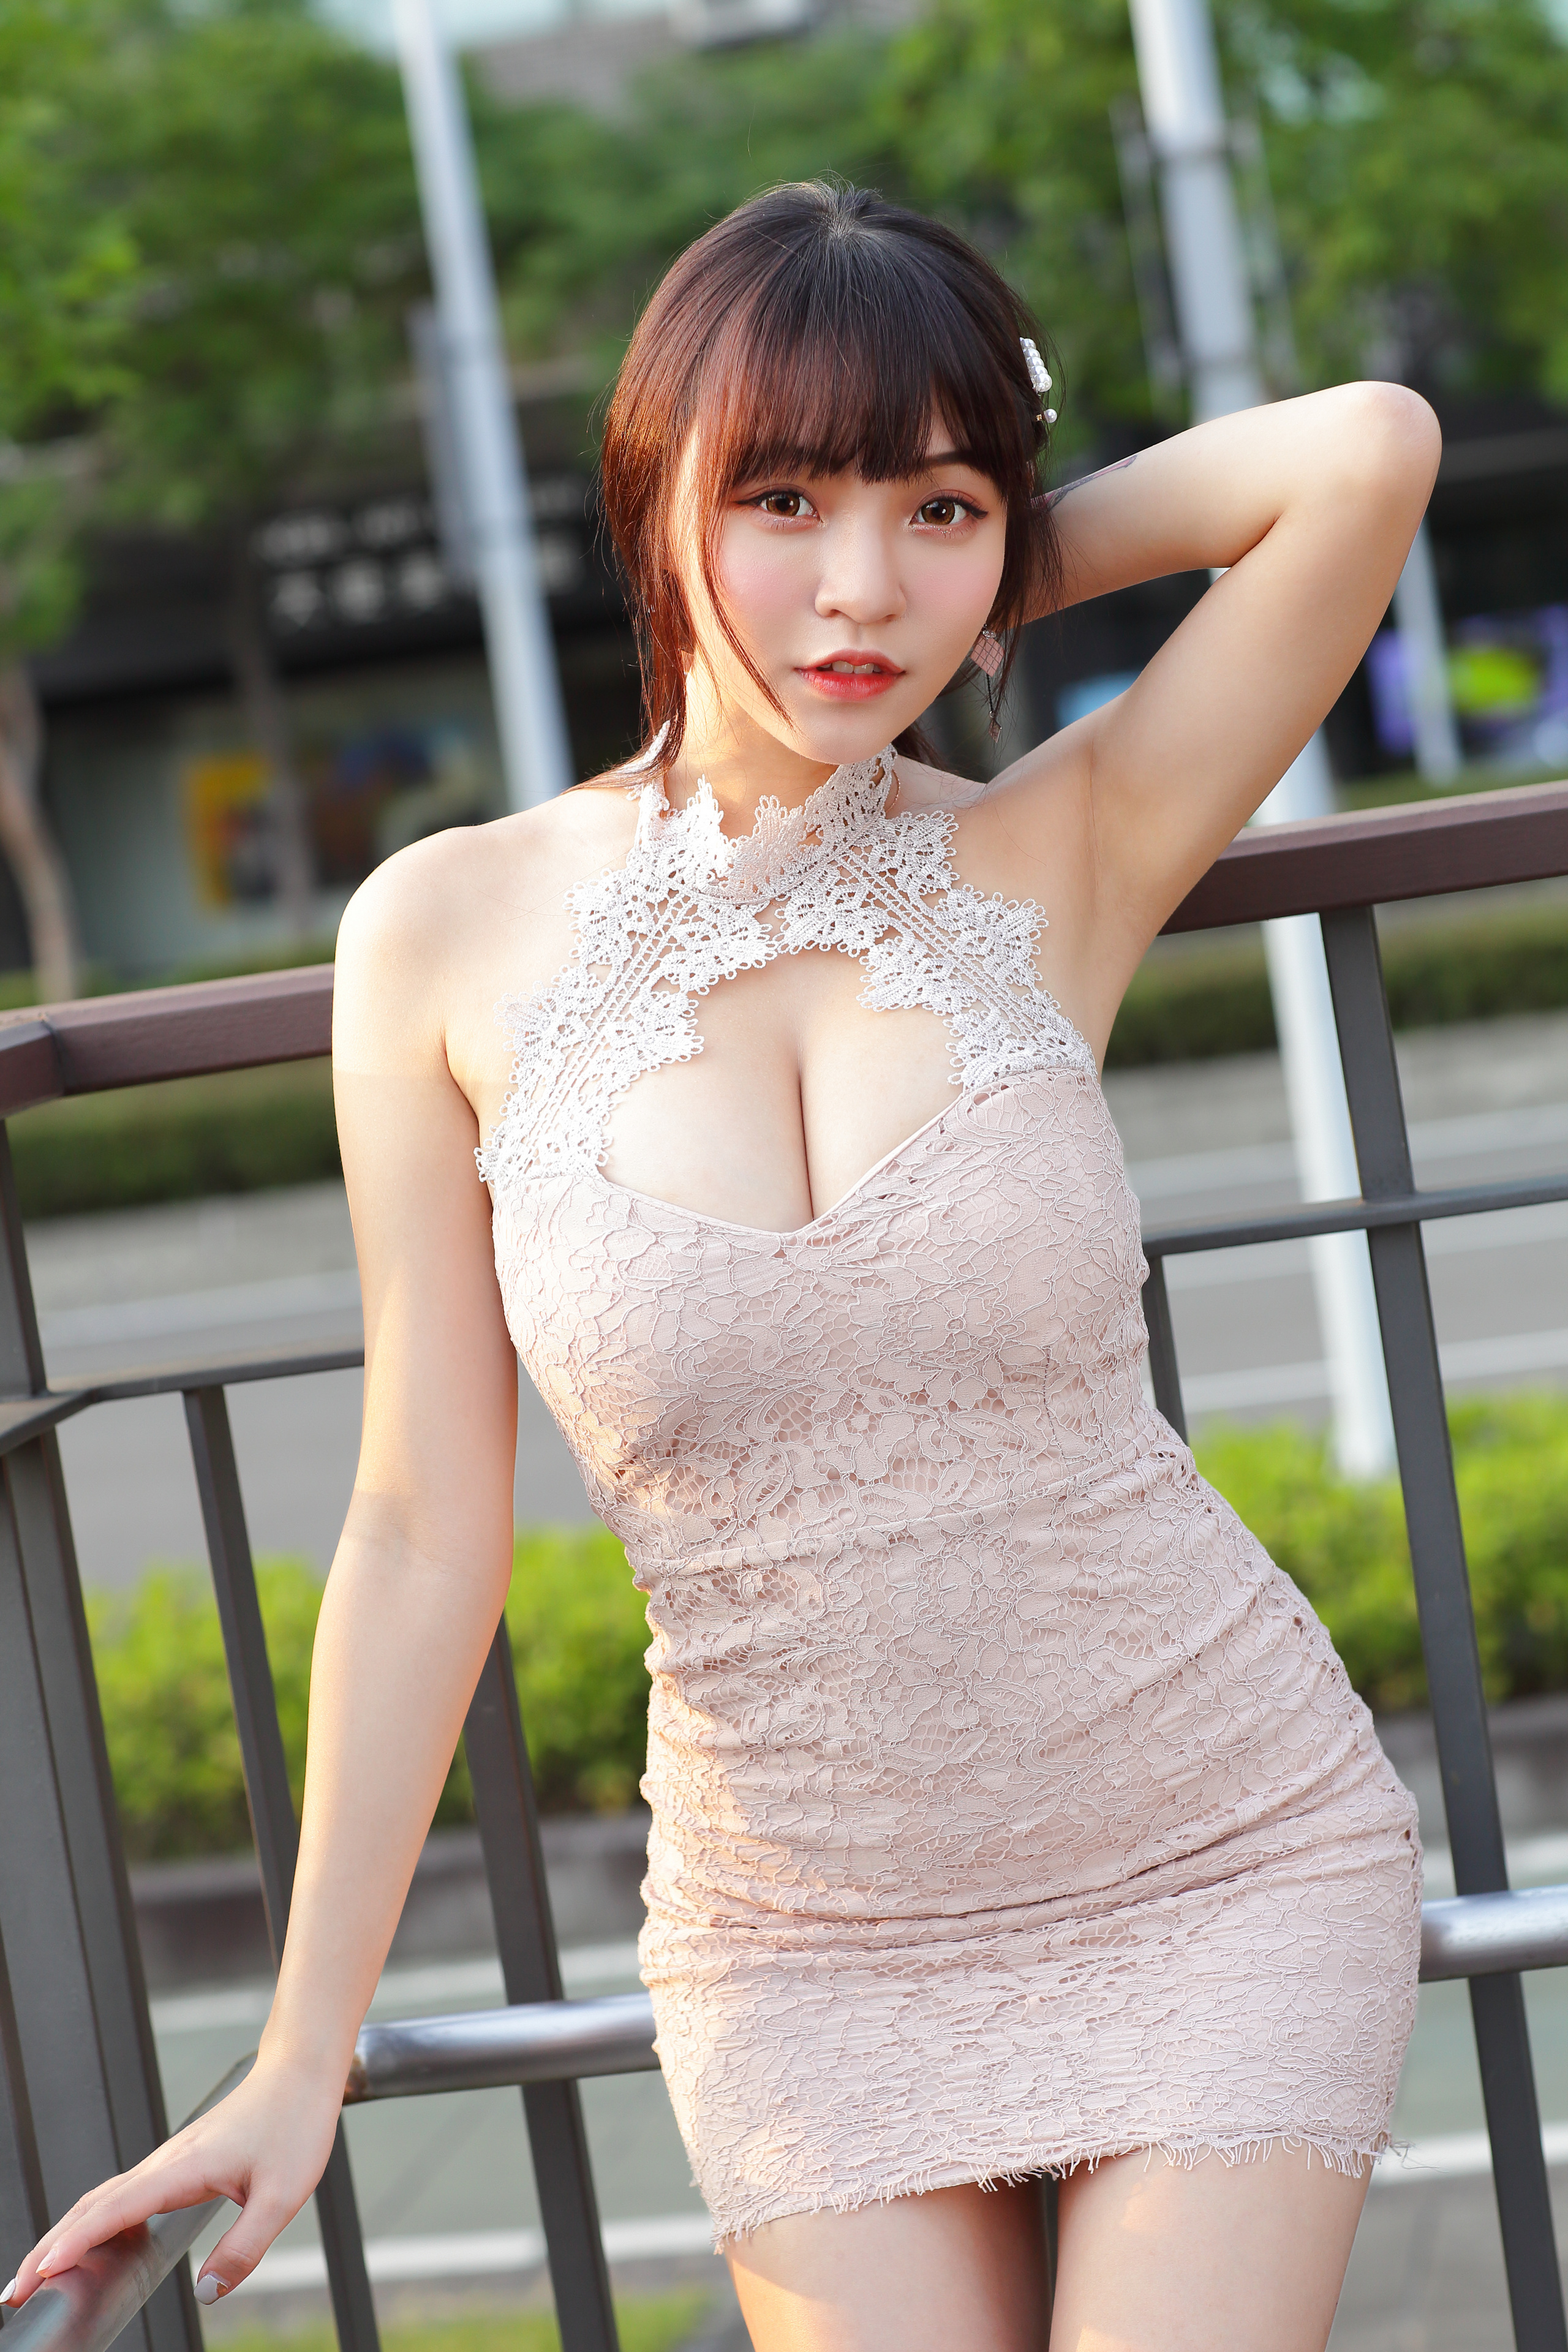 Pictures Pose decollete young woman Asian Hands Glance Dress  for Mobile phone posing neckline Décolletage Girls female Asiatic Staring gown frock